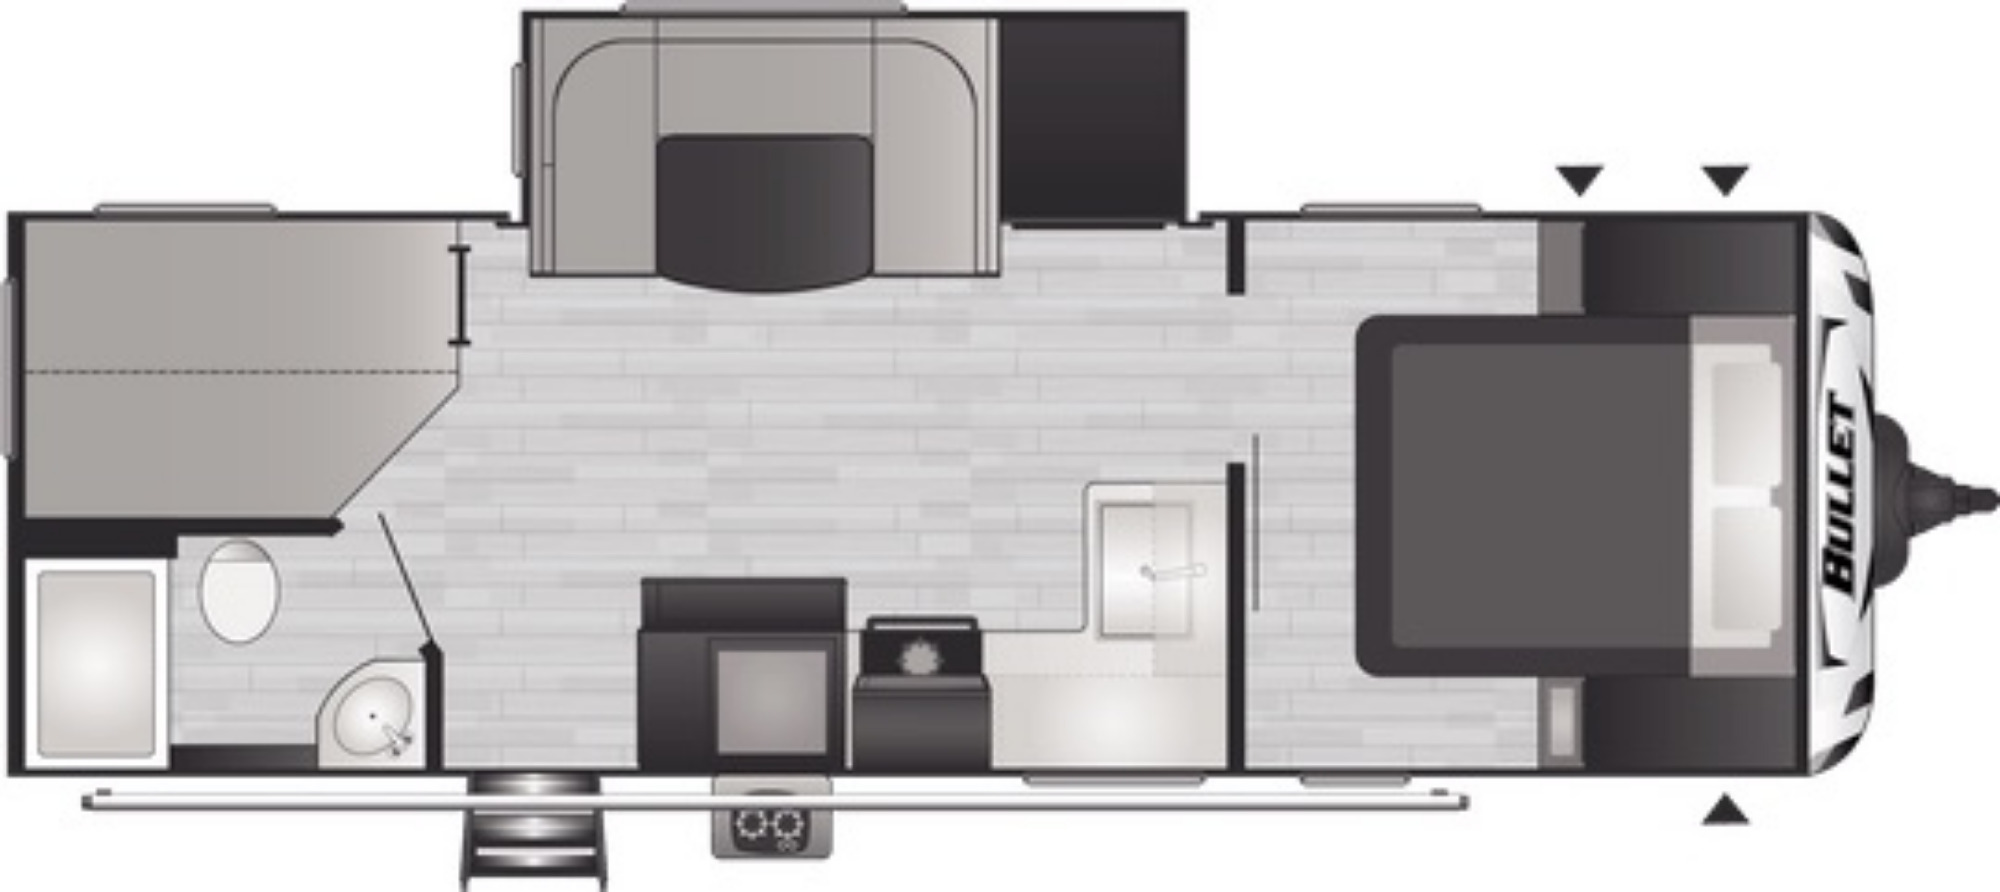 View Floor Plan for 2021 KEYSTONE BULLET 250BHSWE